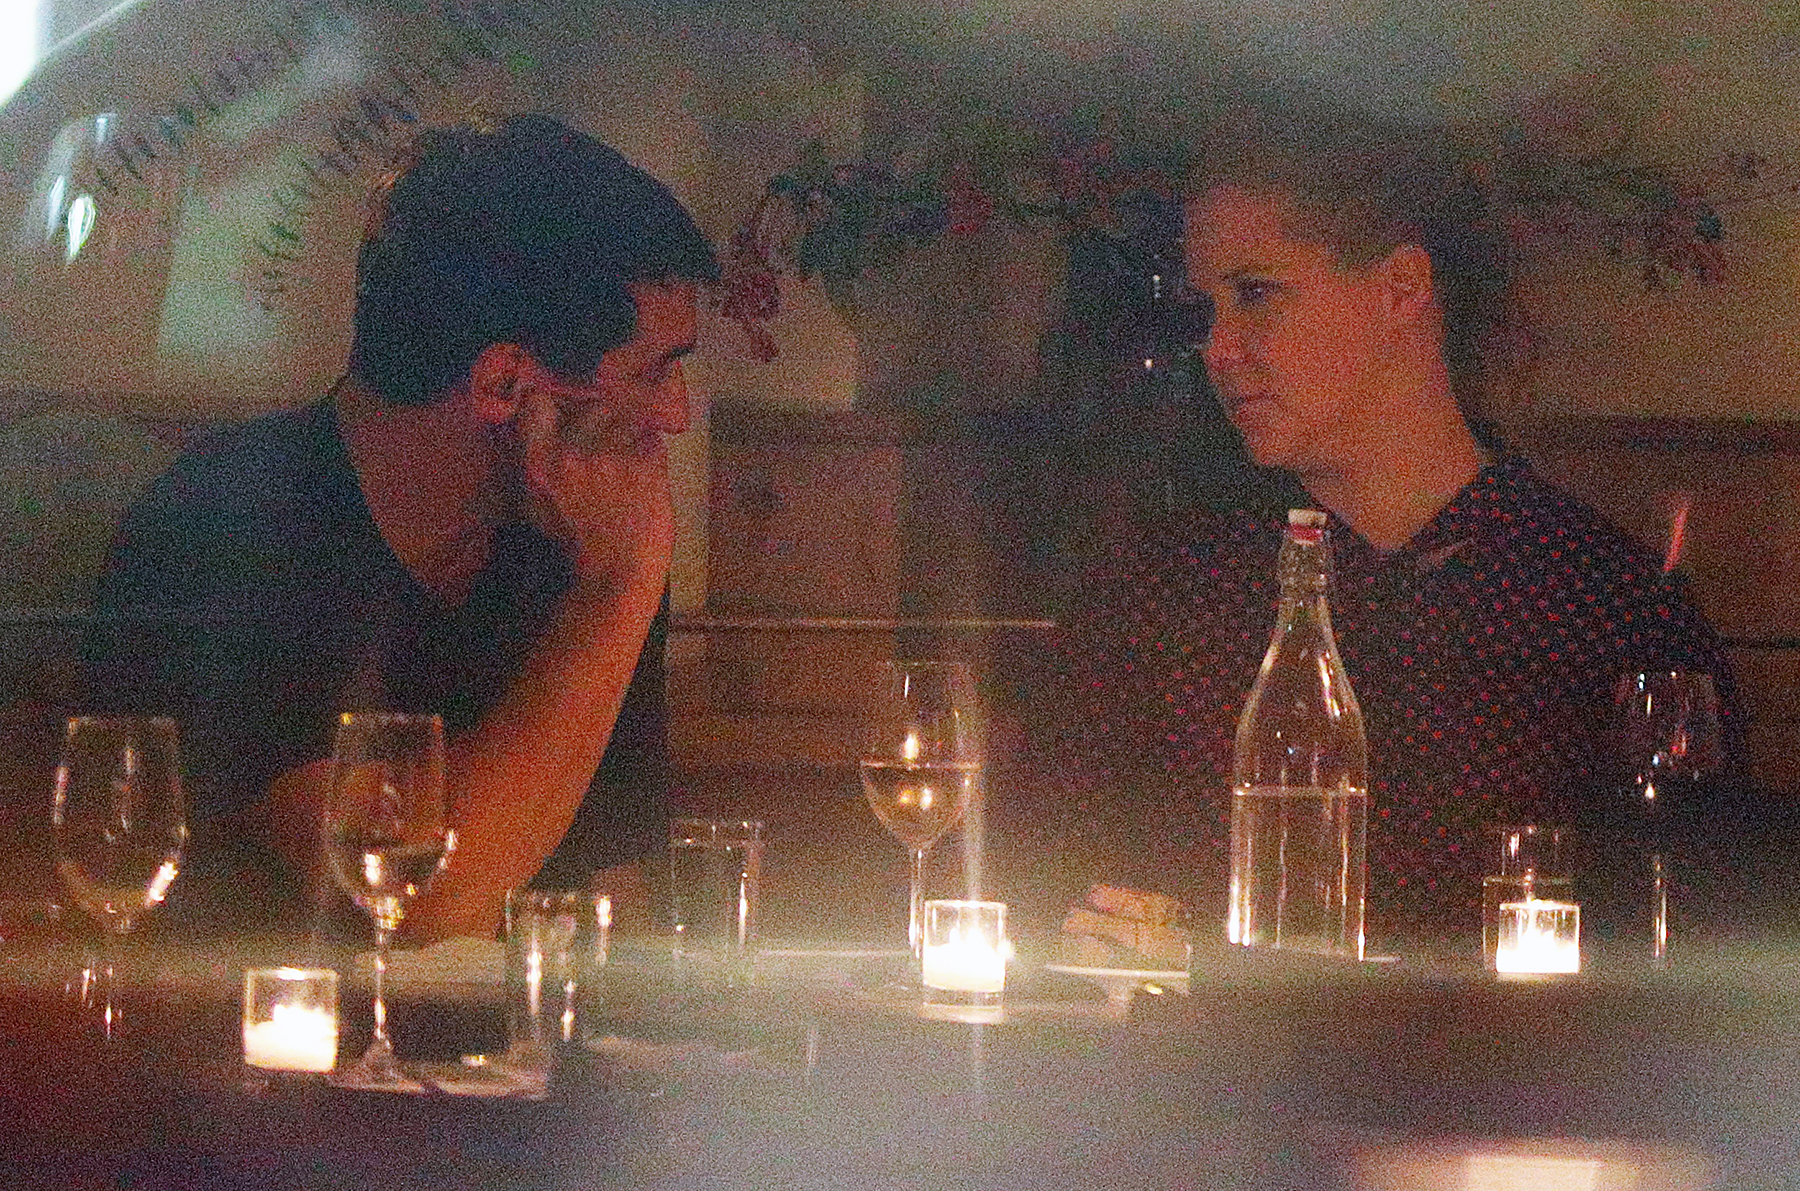 Chris Fischer Amy Schumer dinner date